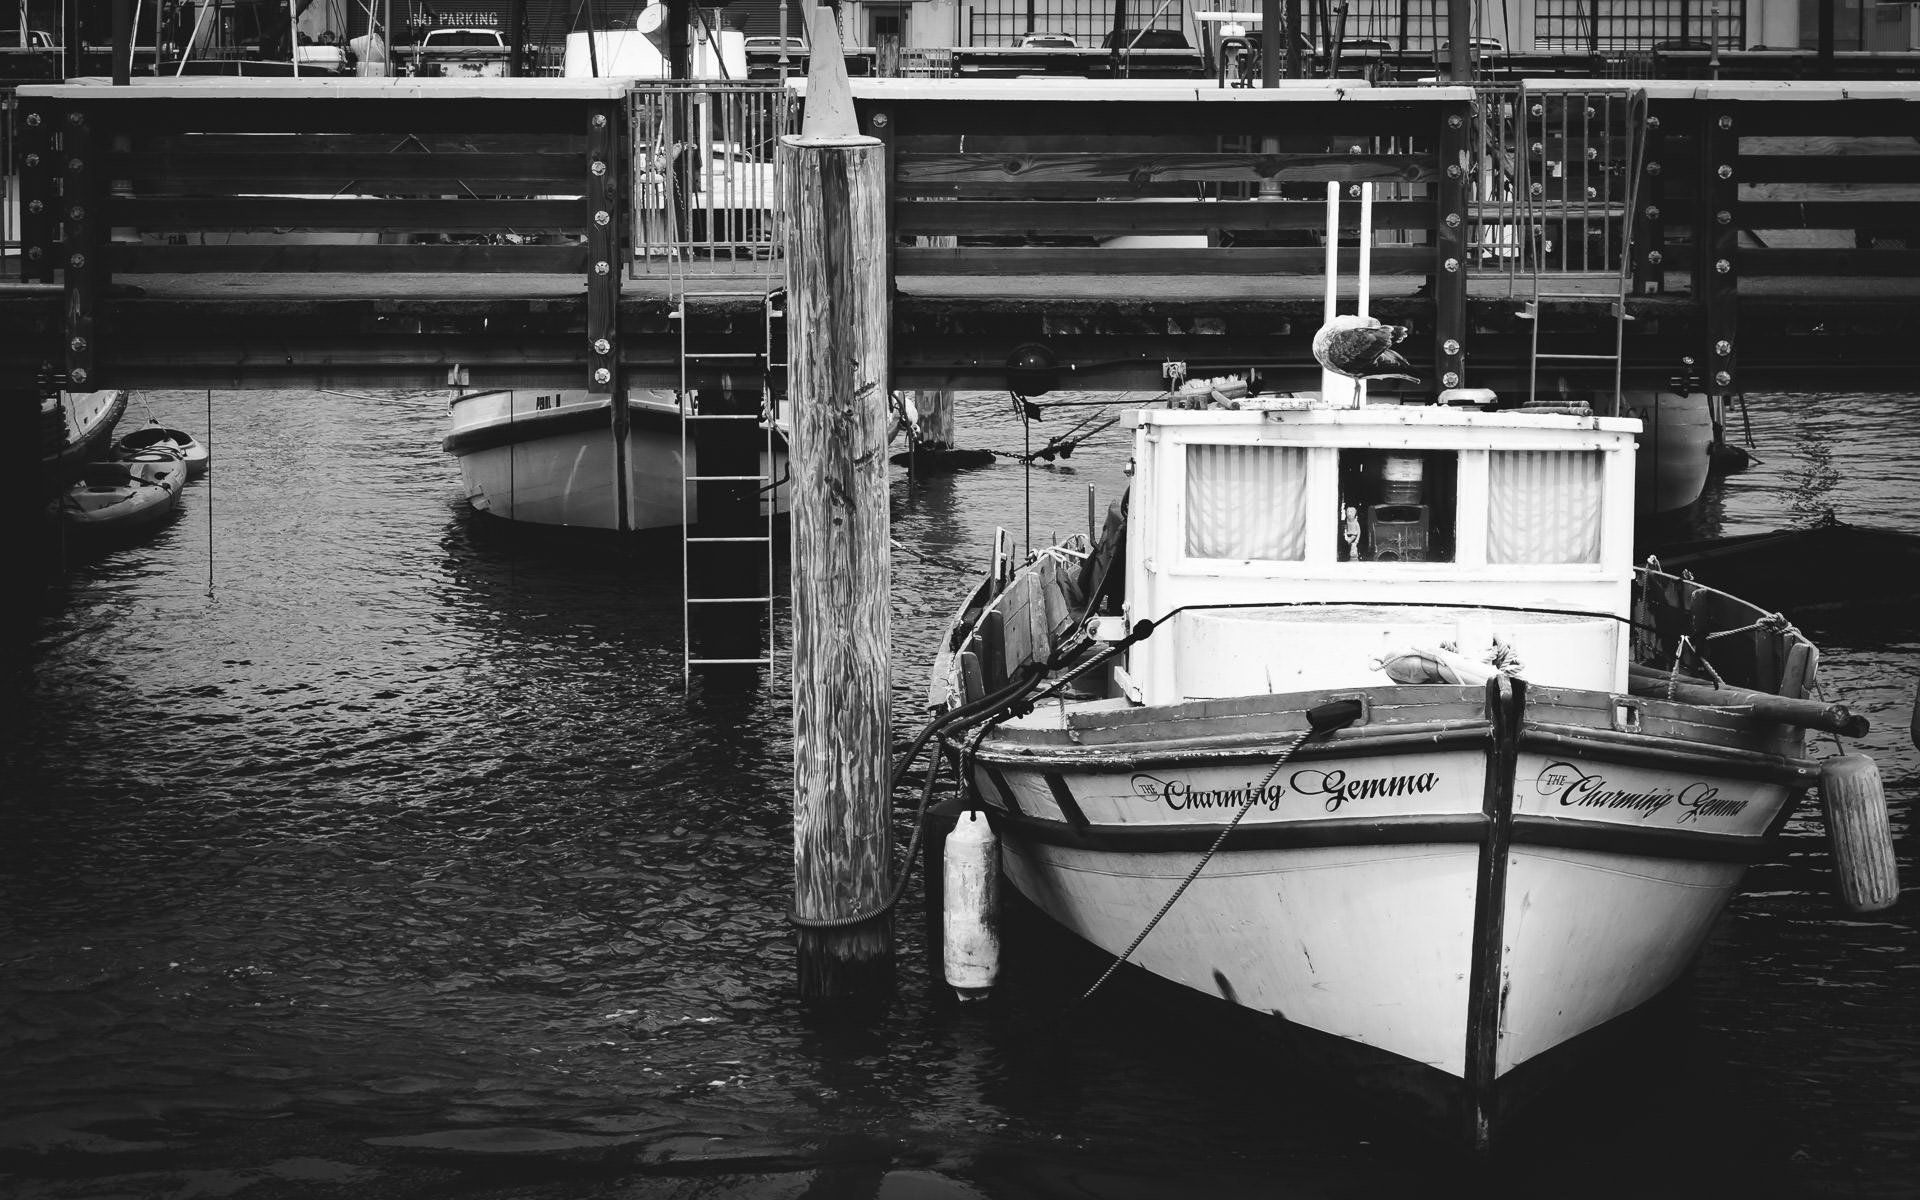 A boat docked at a pier in San Francisco's Fisherman's Wharf.